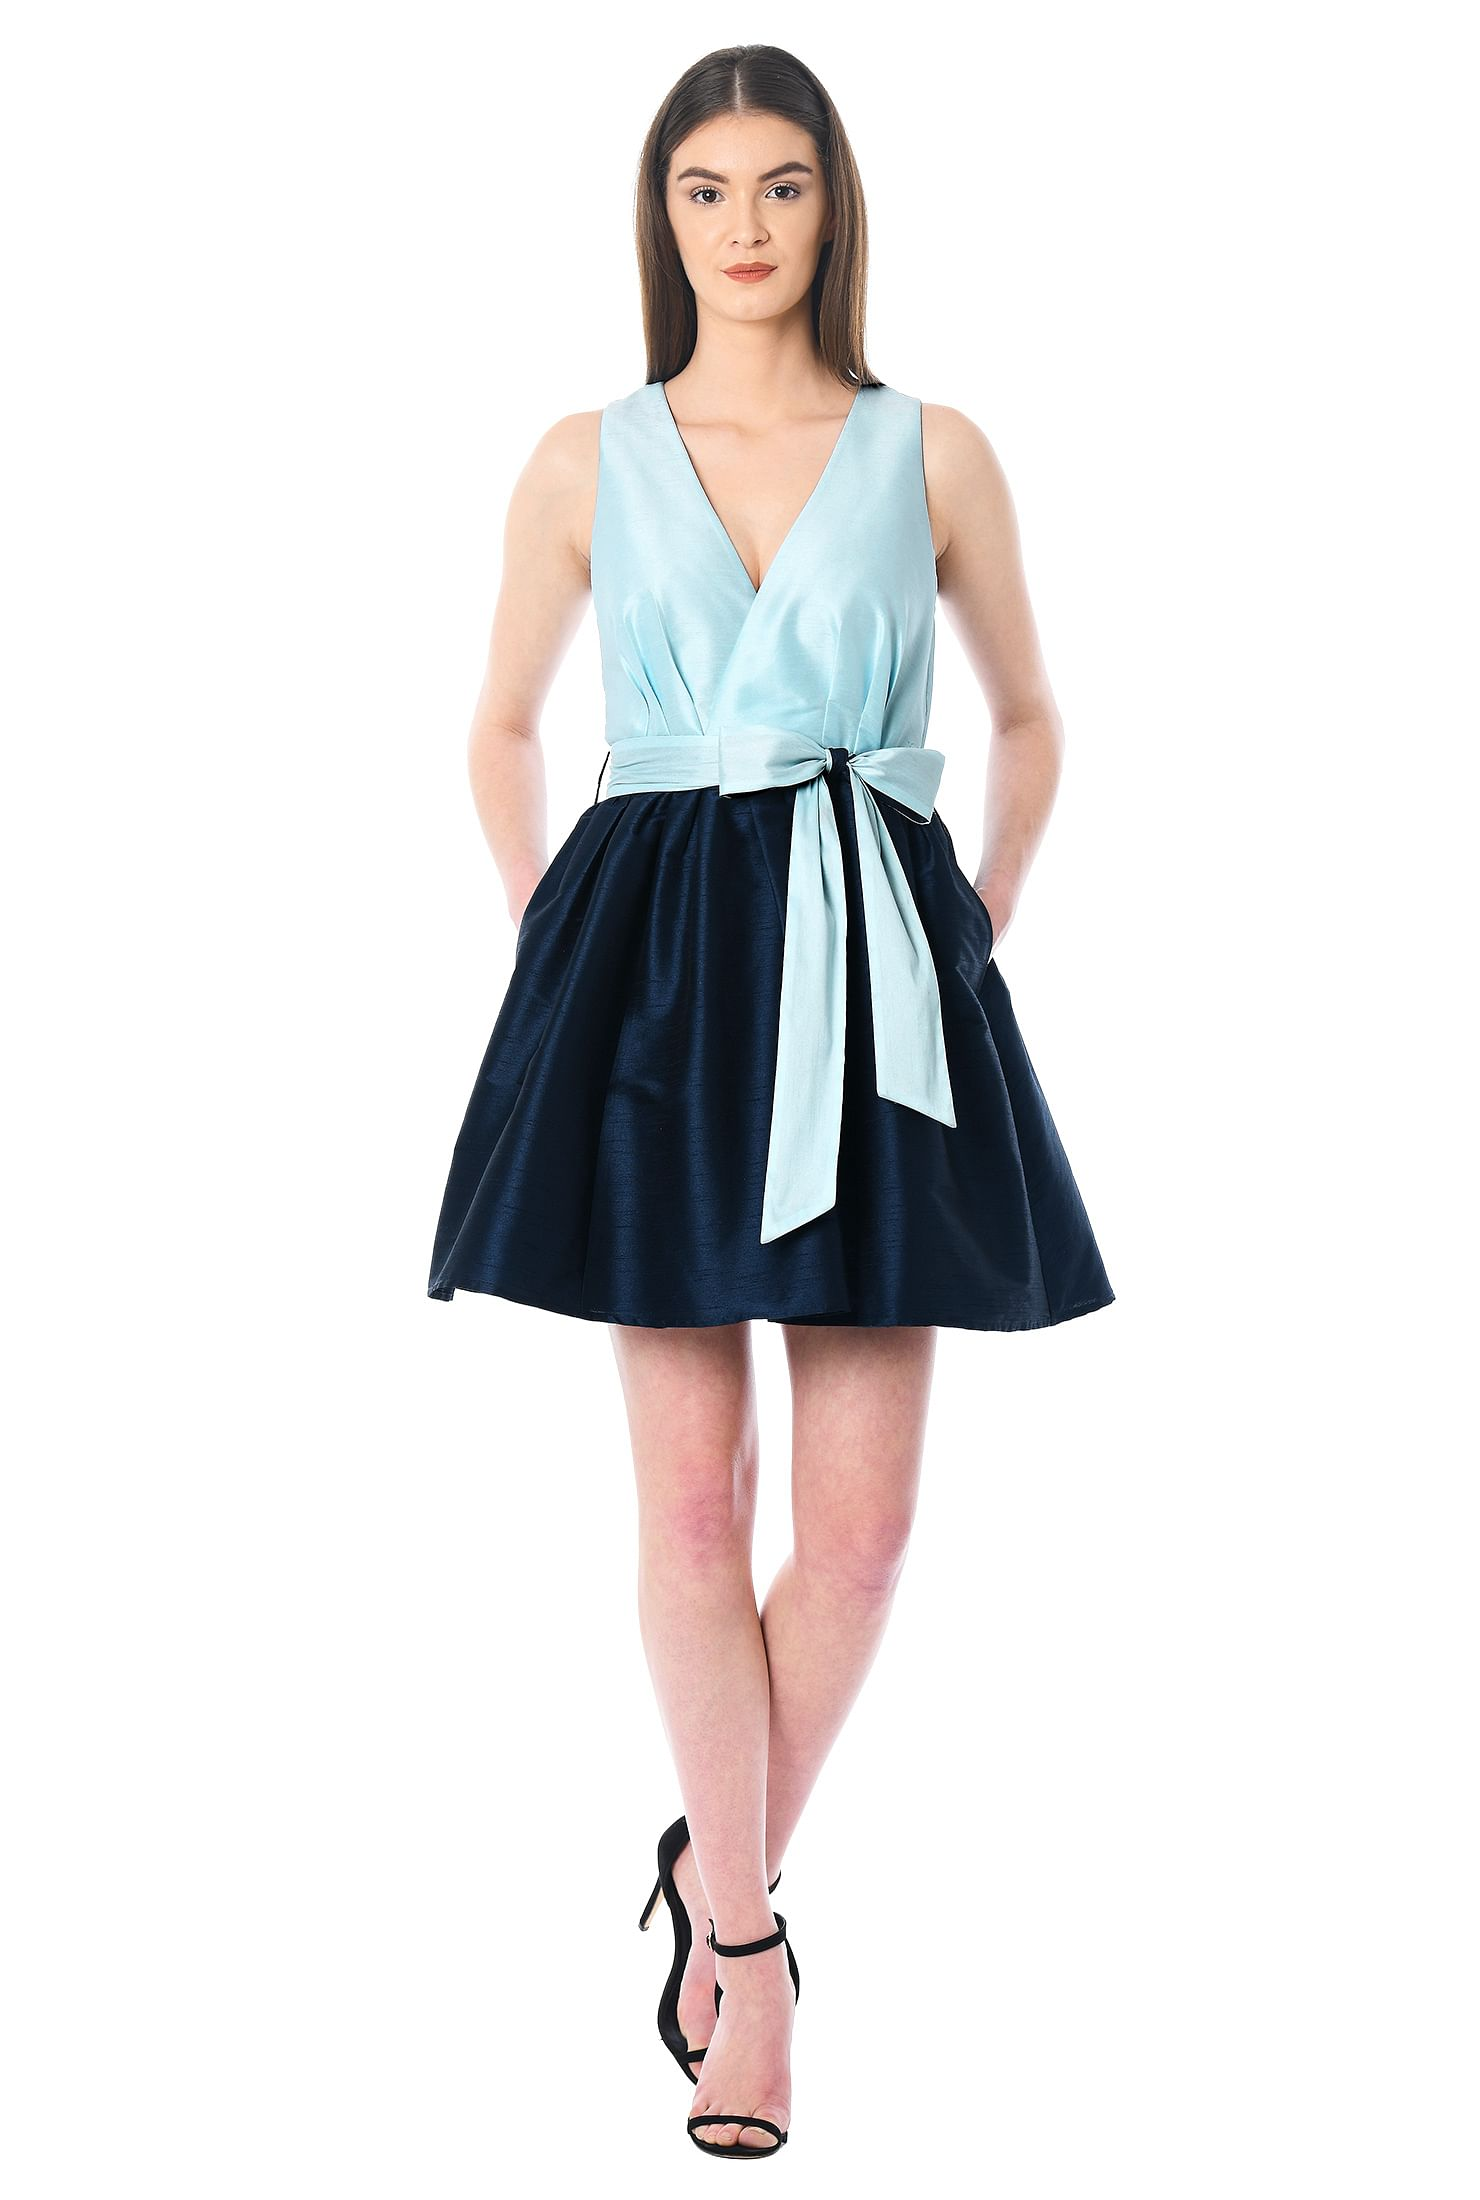 eShakti Women's Two tone sash tie dupioni dress